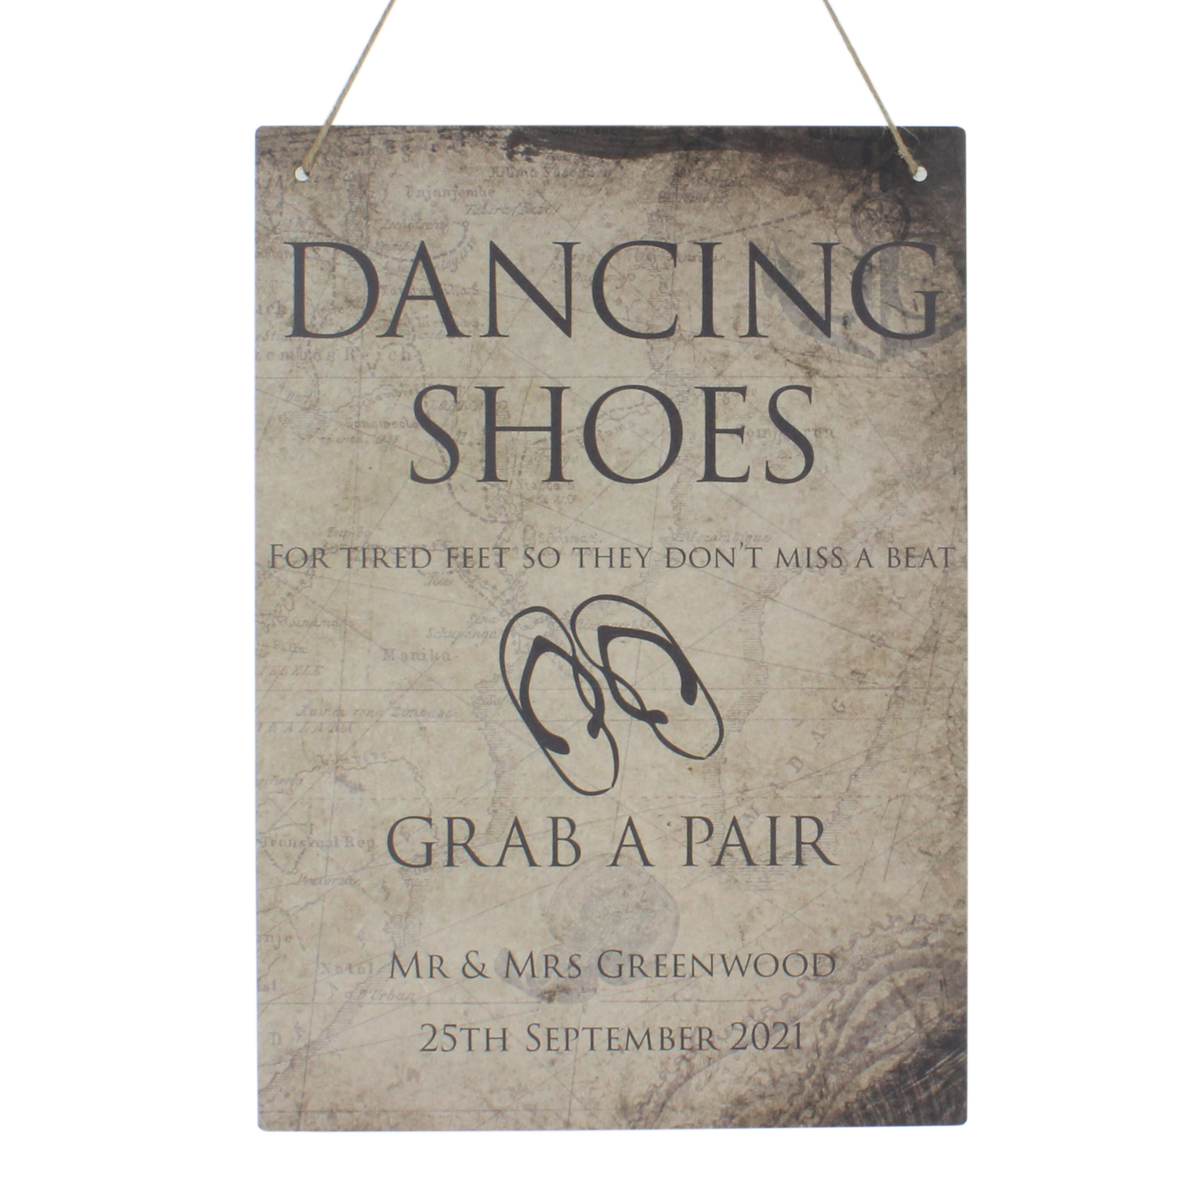 8a2016473 Personalised Dancing Shoes for Tired Feet Wedding Flip Flop Sign ...